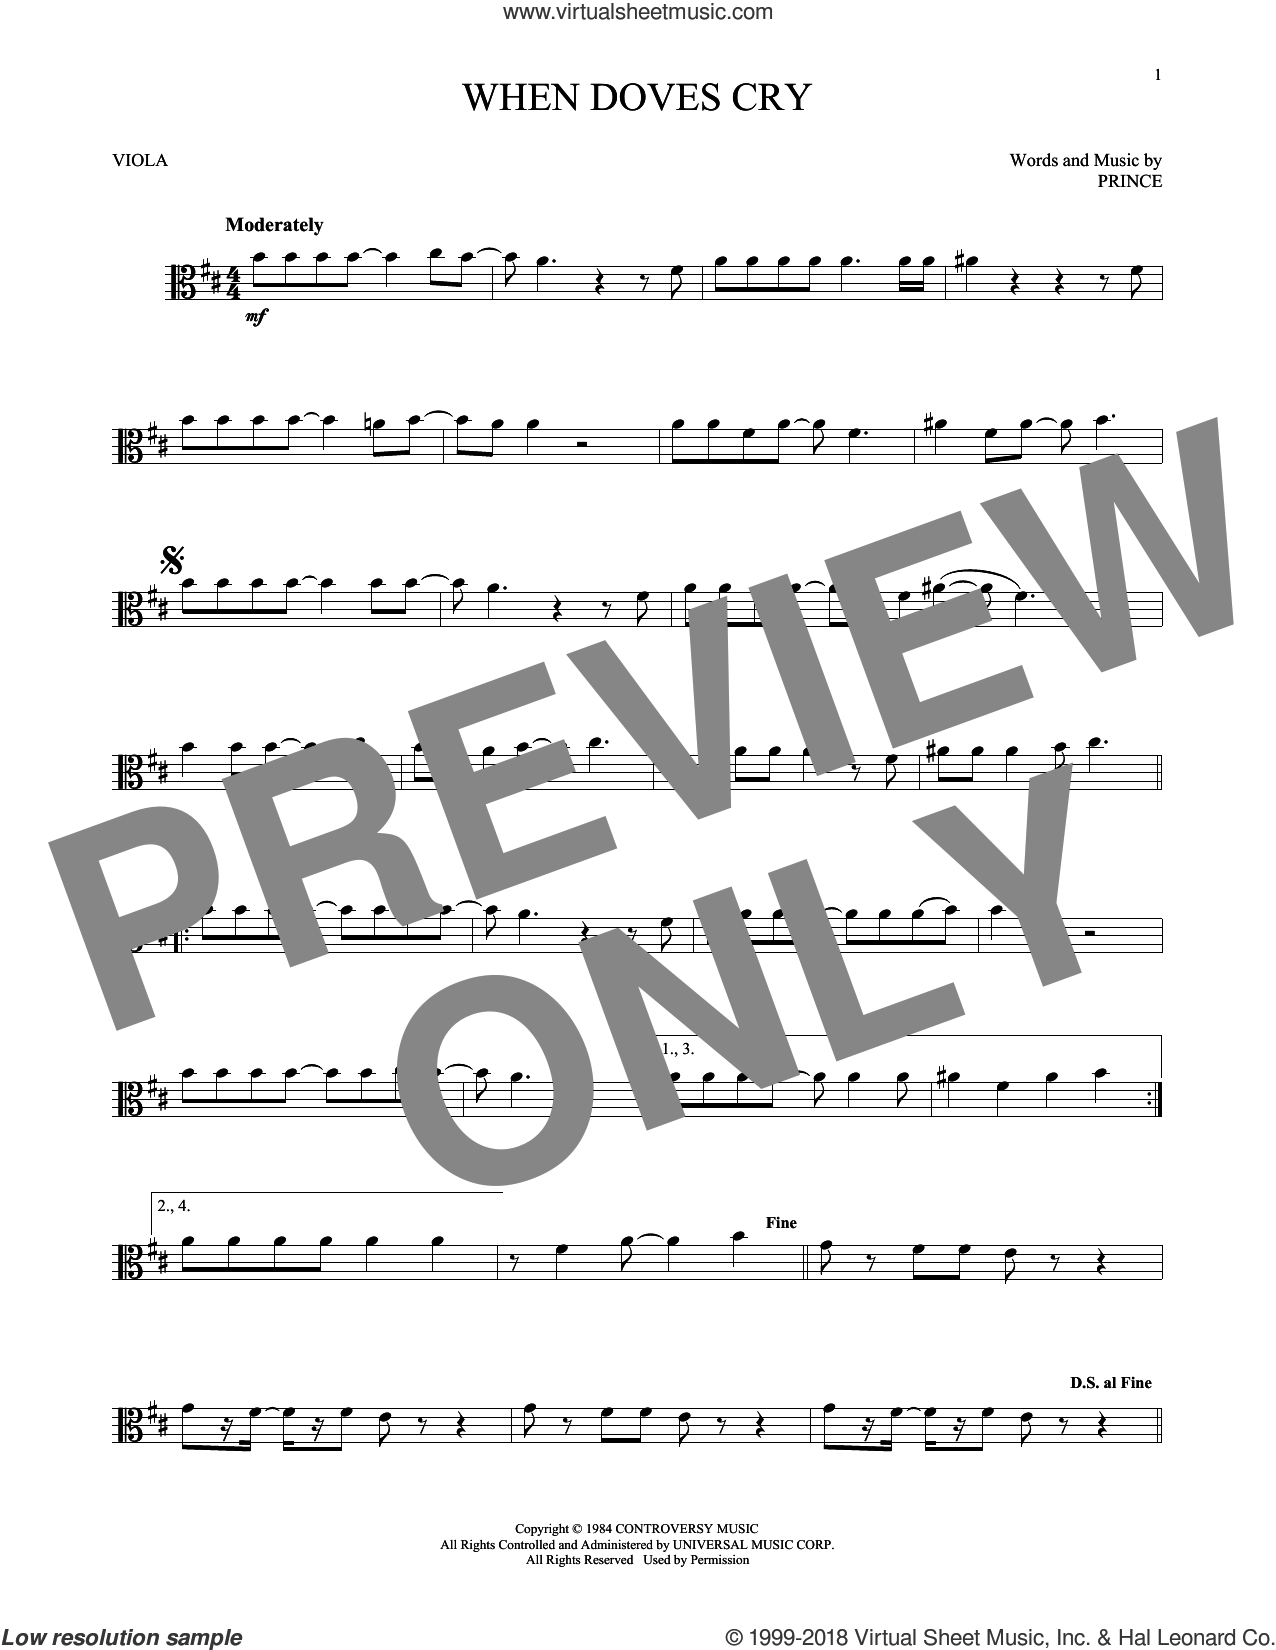 When Doves Cry sheet music for viola solo by Prince, intermediate skill level